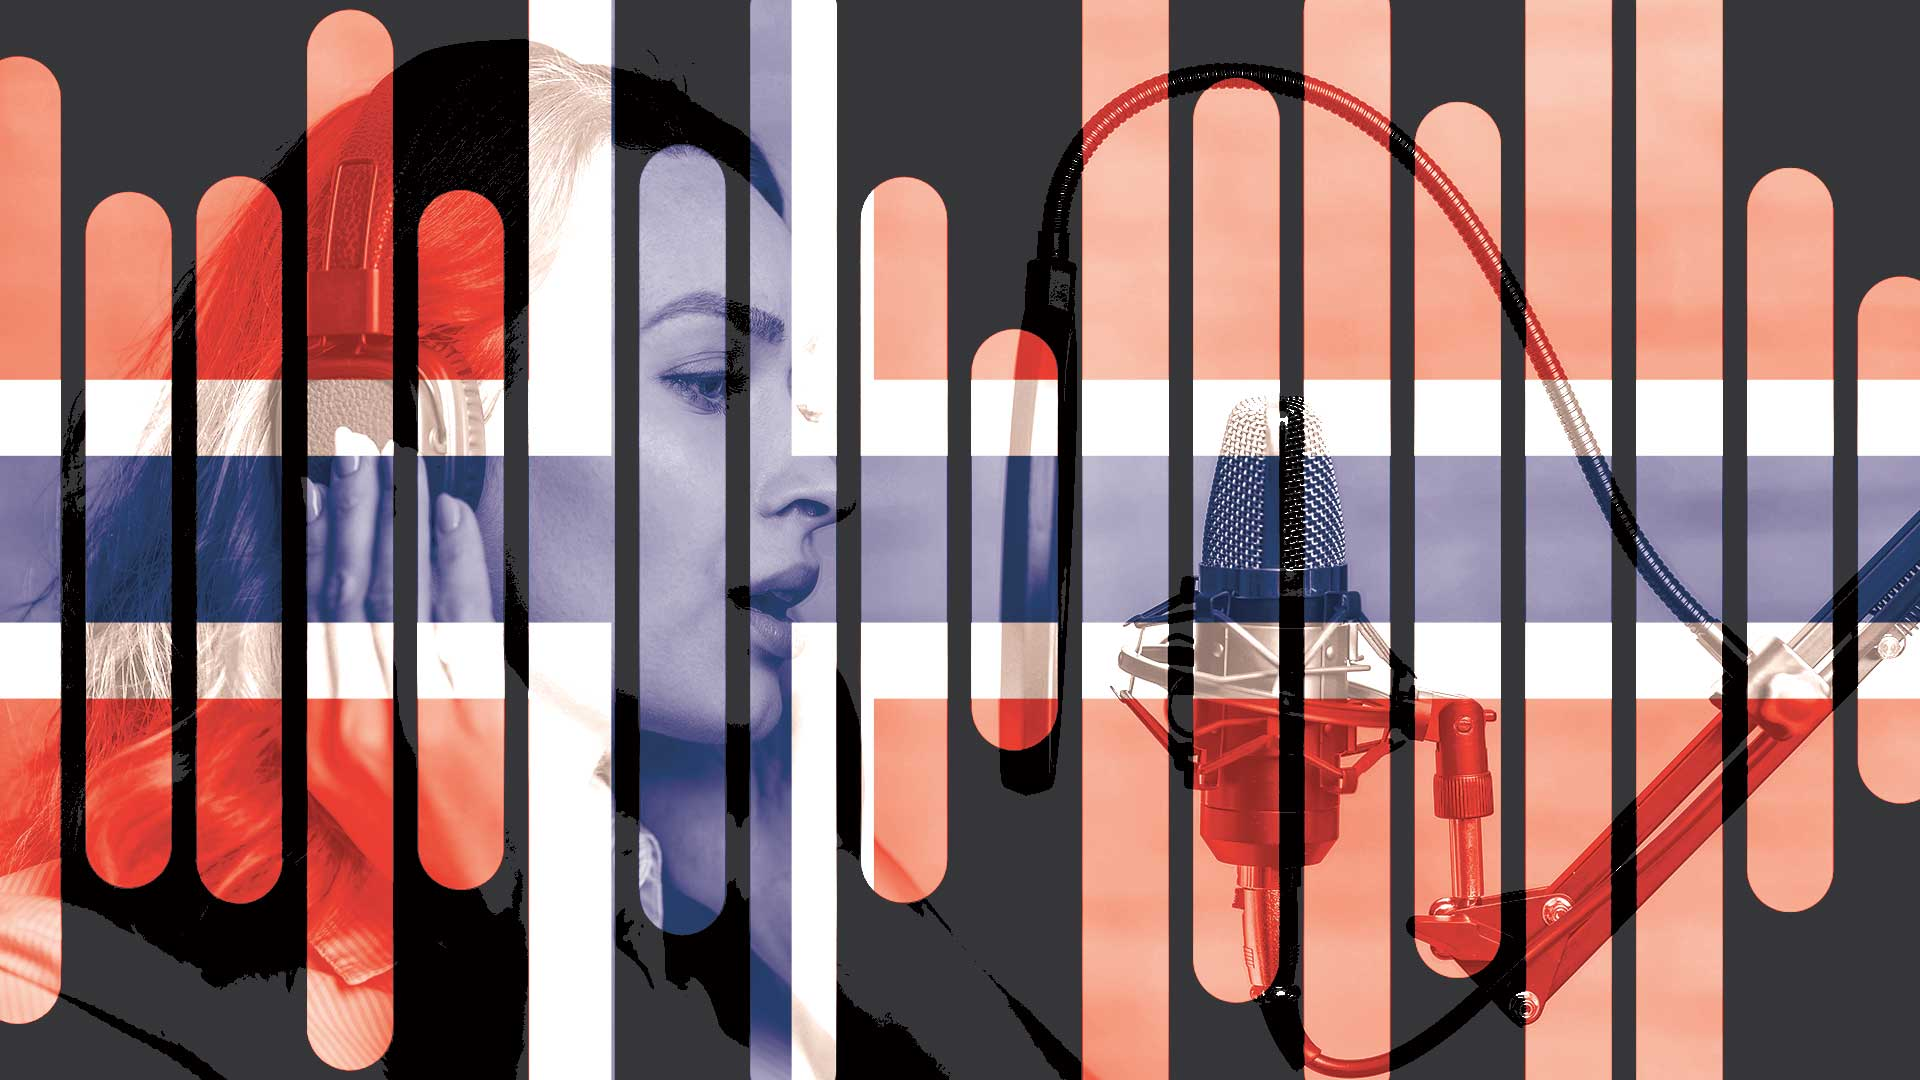 Voice-Over Services Norway - Voquent